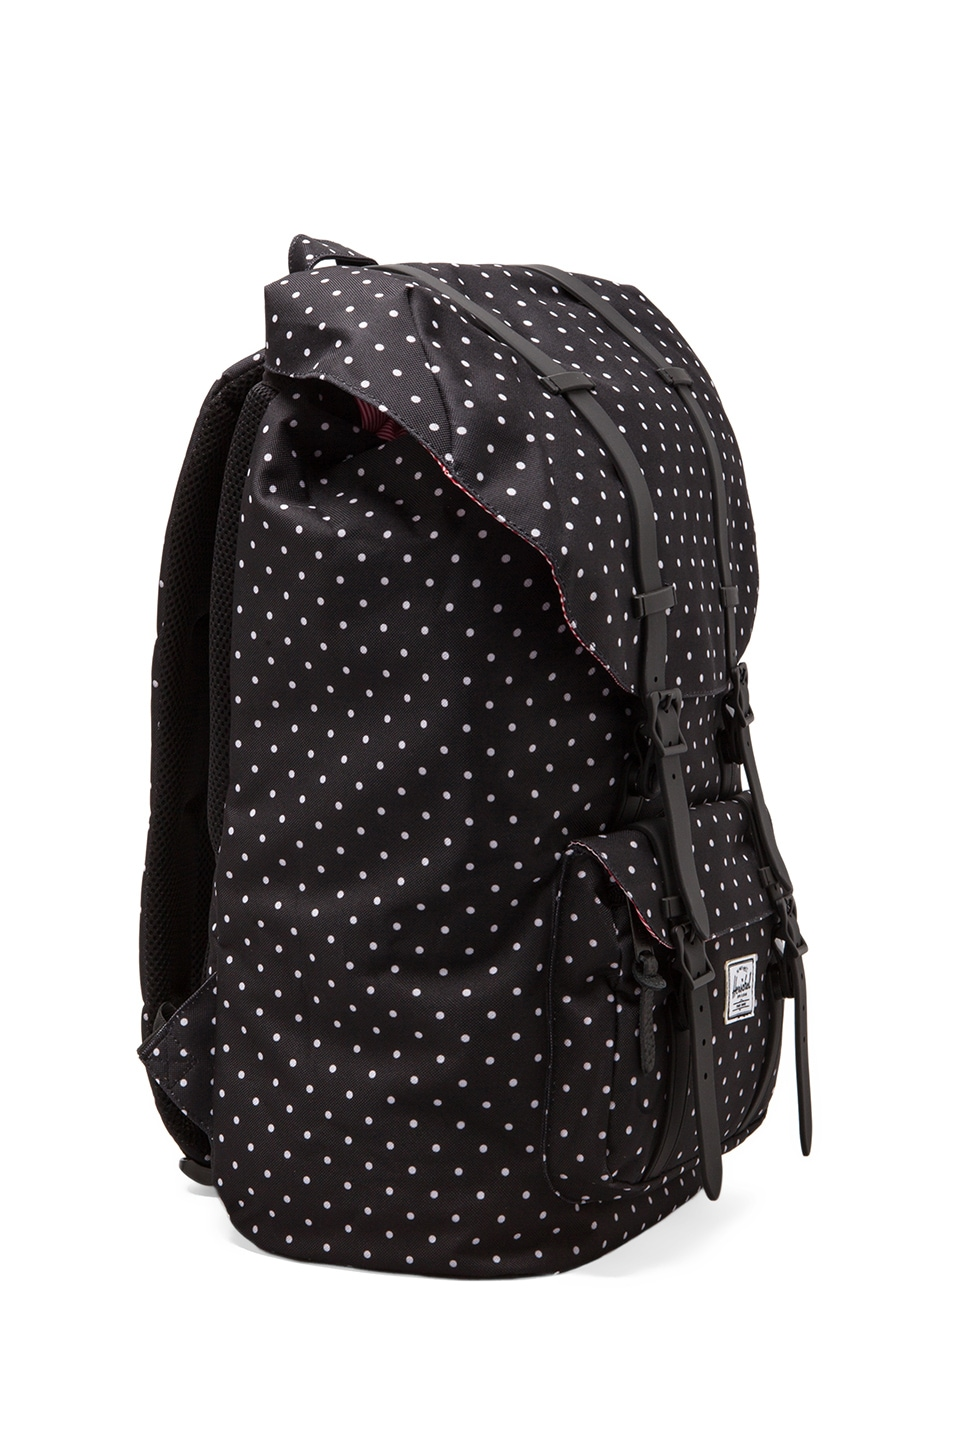 Herschel Supply Co. Little America Polka Dot in Black/ White